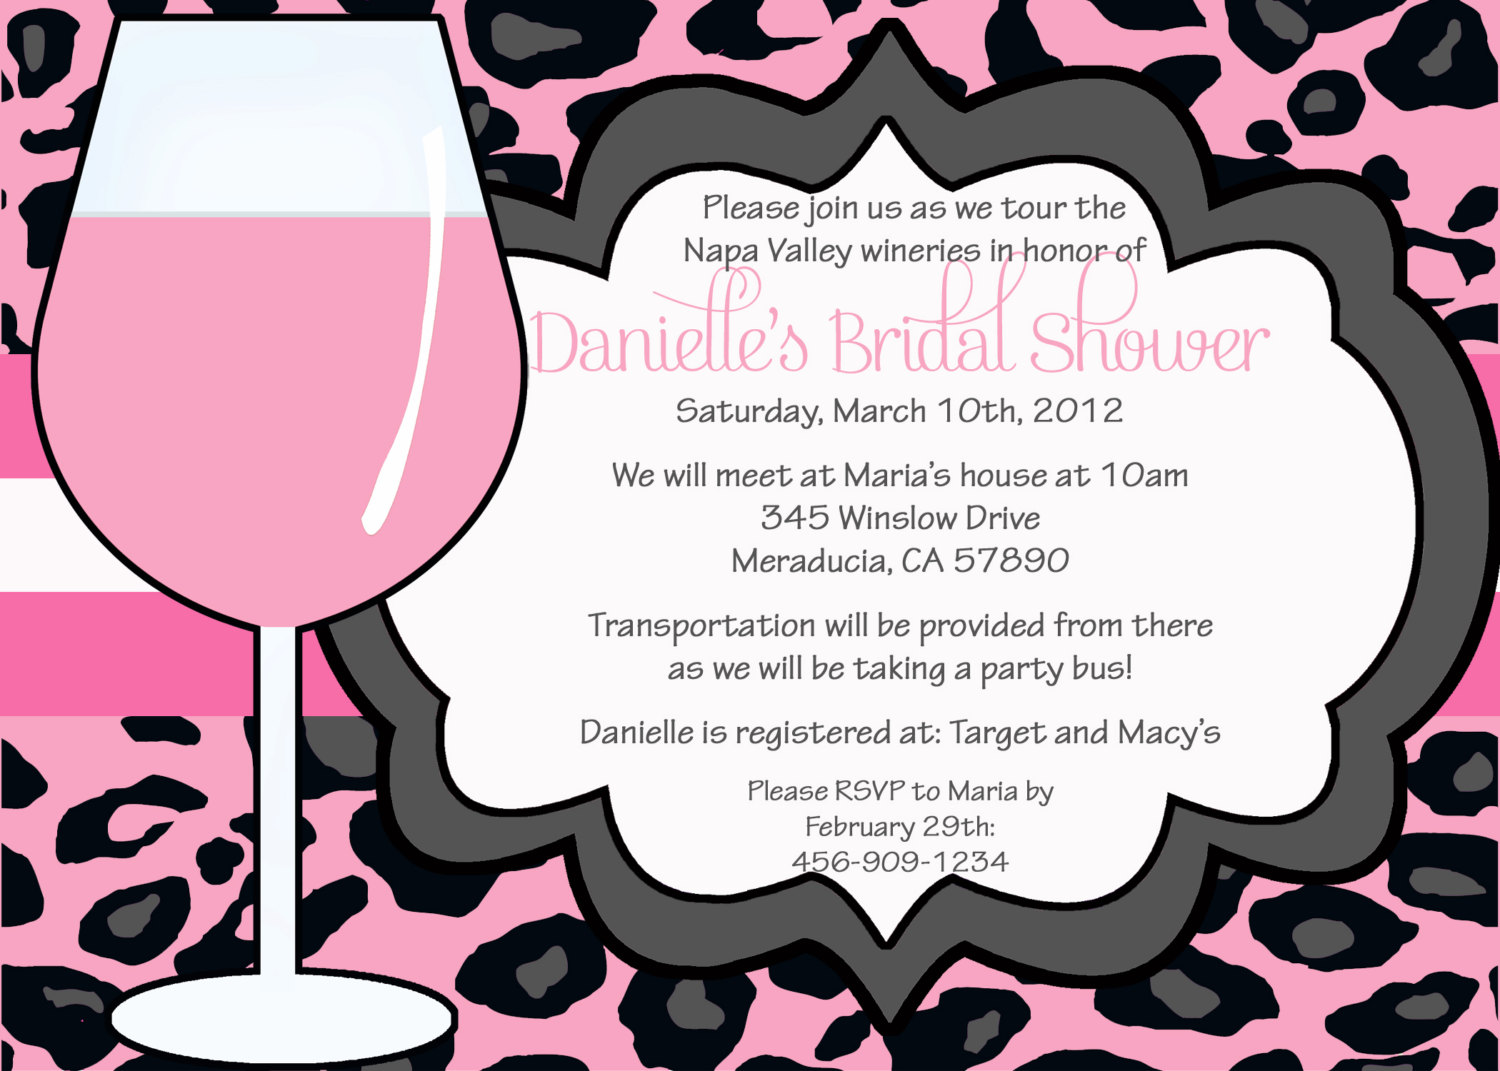 Bachelorette Party Invitations Etsy - Mickey Mouse Invitations ...